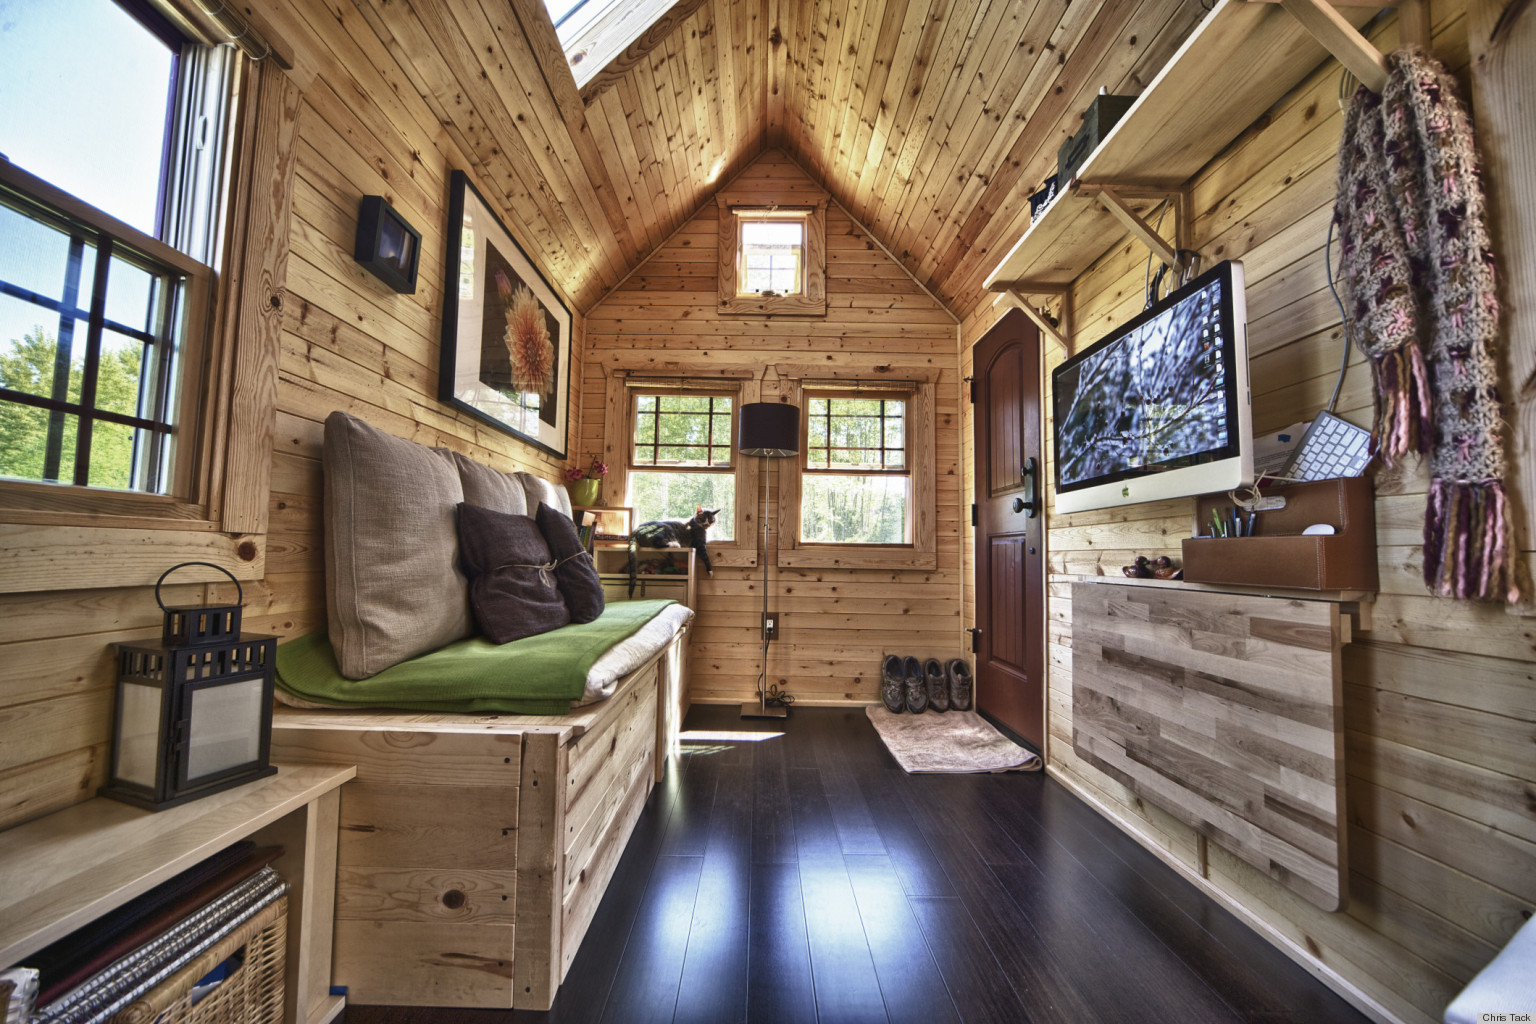 Chris And Malissa Tacks Tiny Home Transformed This HighTech Couple Into SimpleLiving Converts